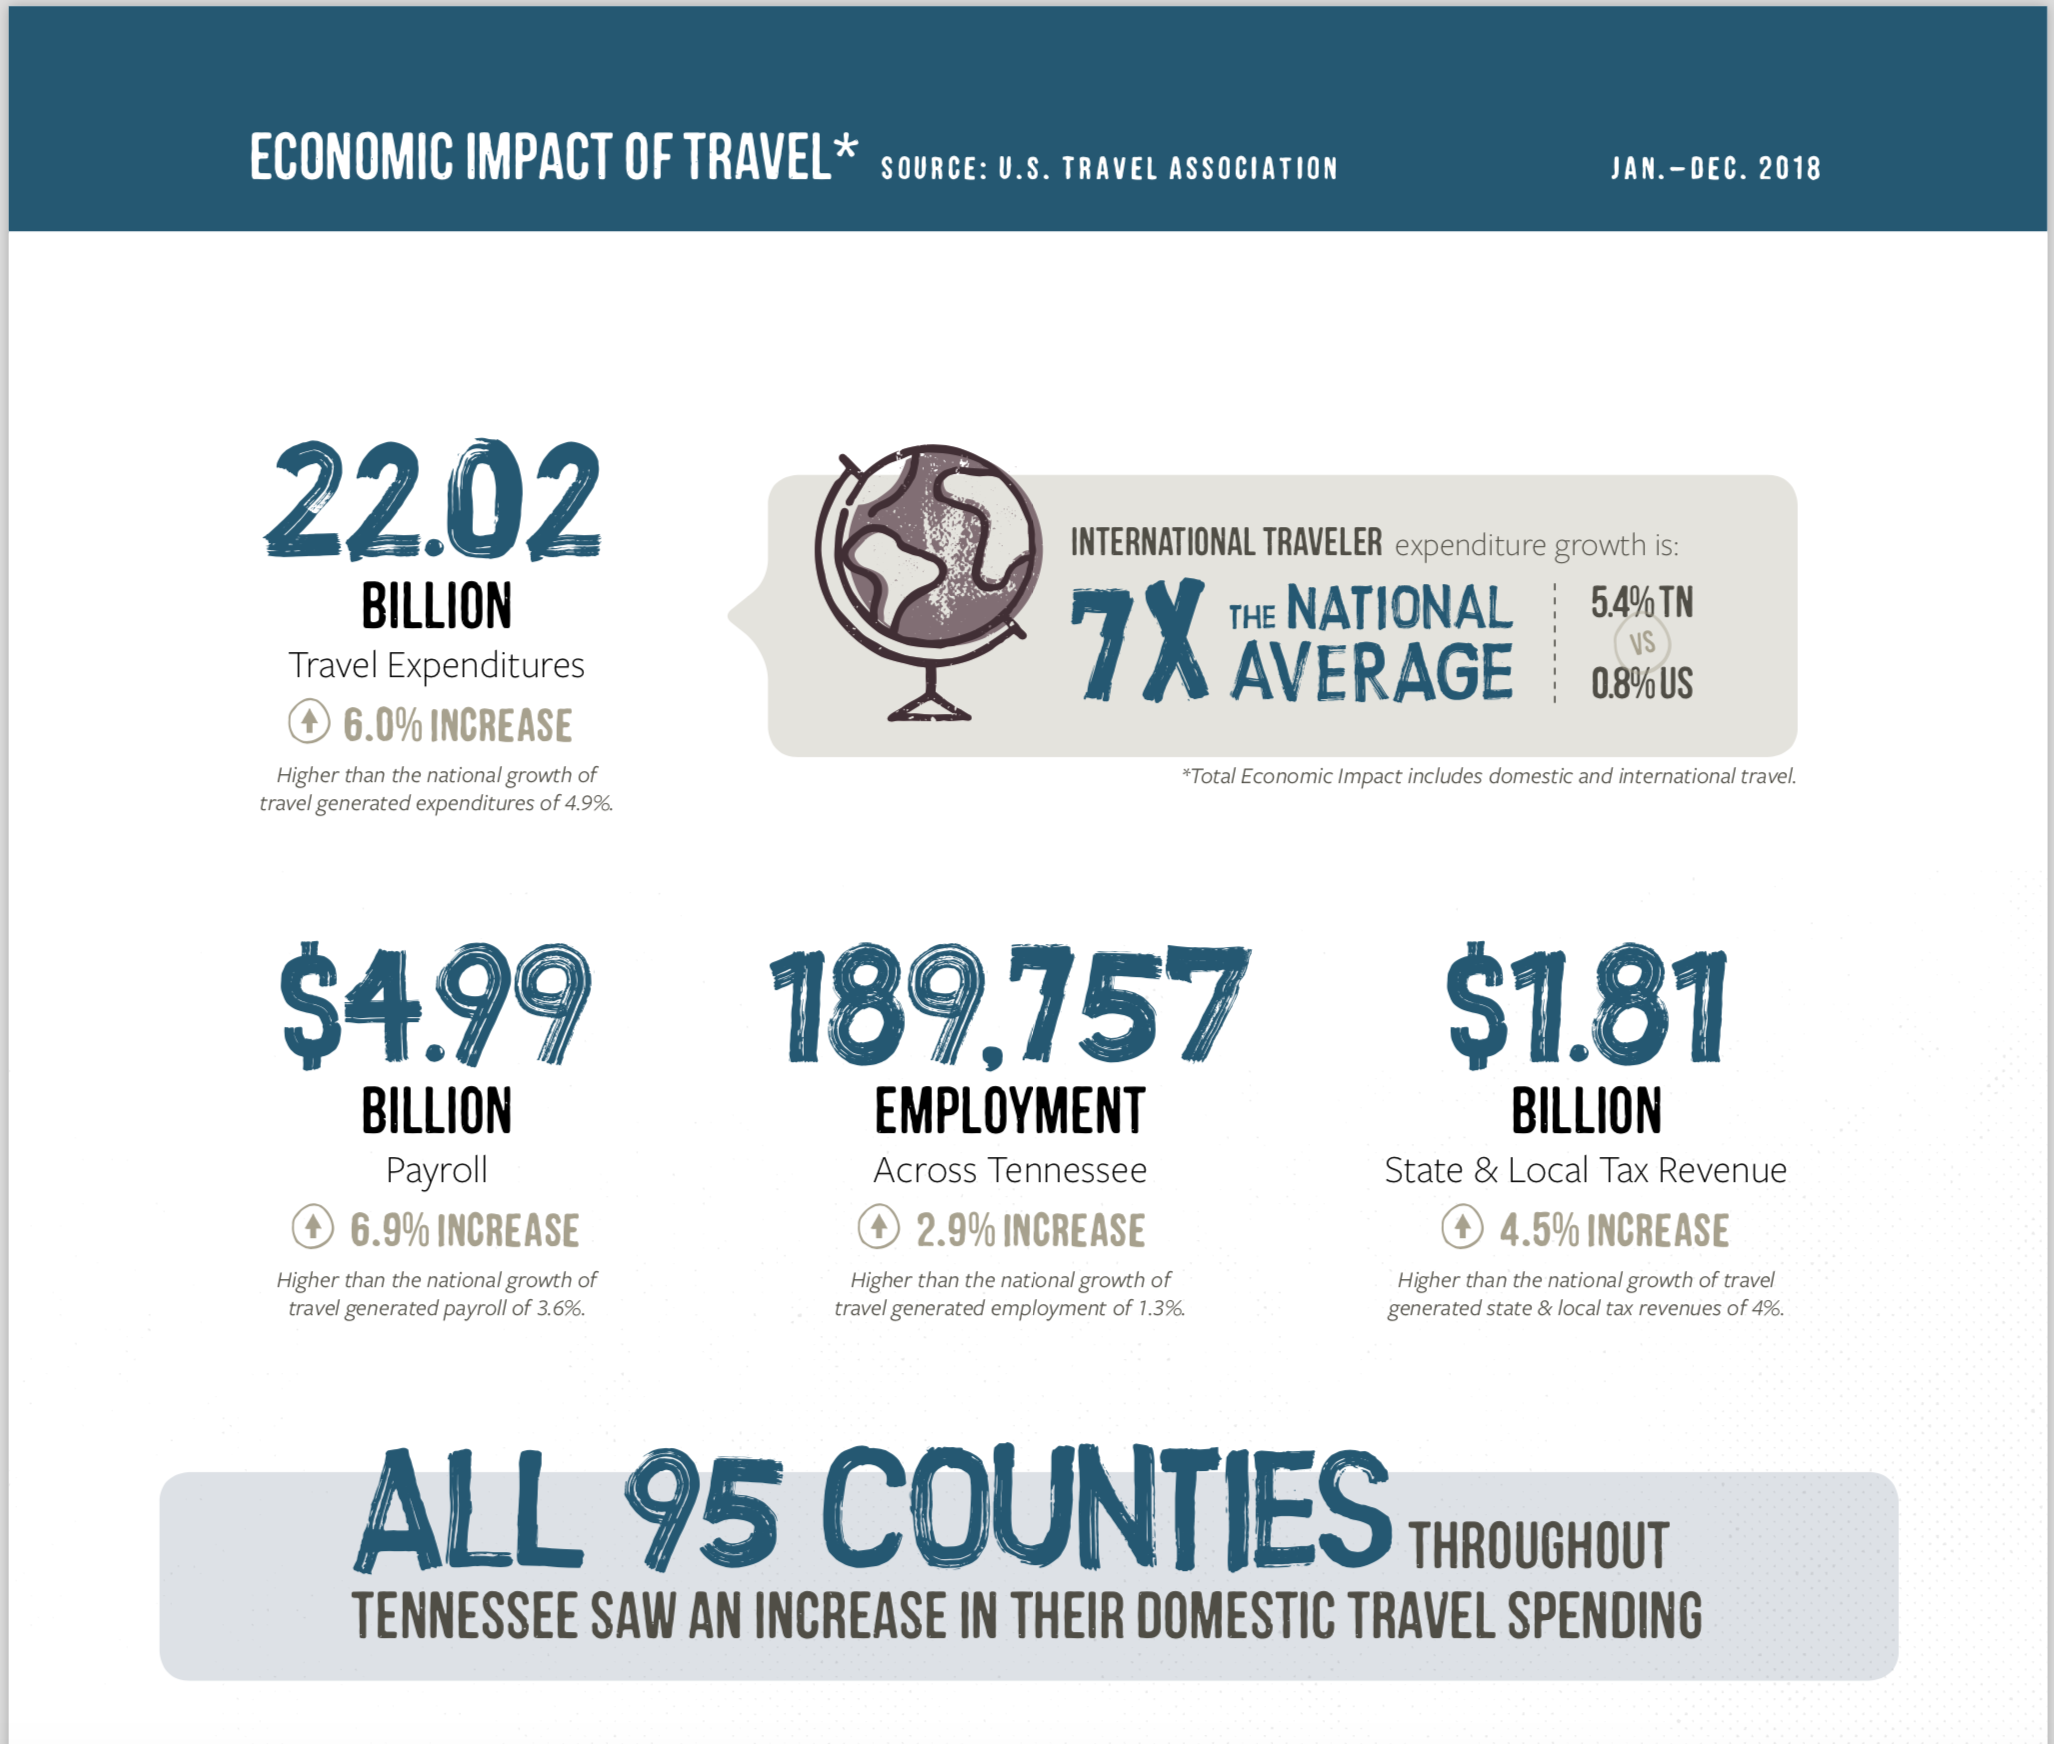 Impact of Travel. Source U.S. Travel Association